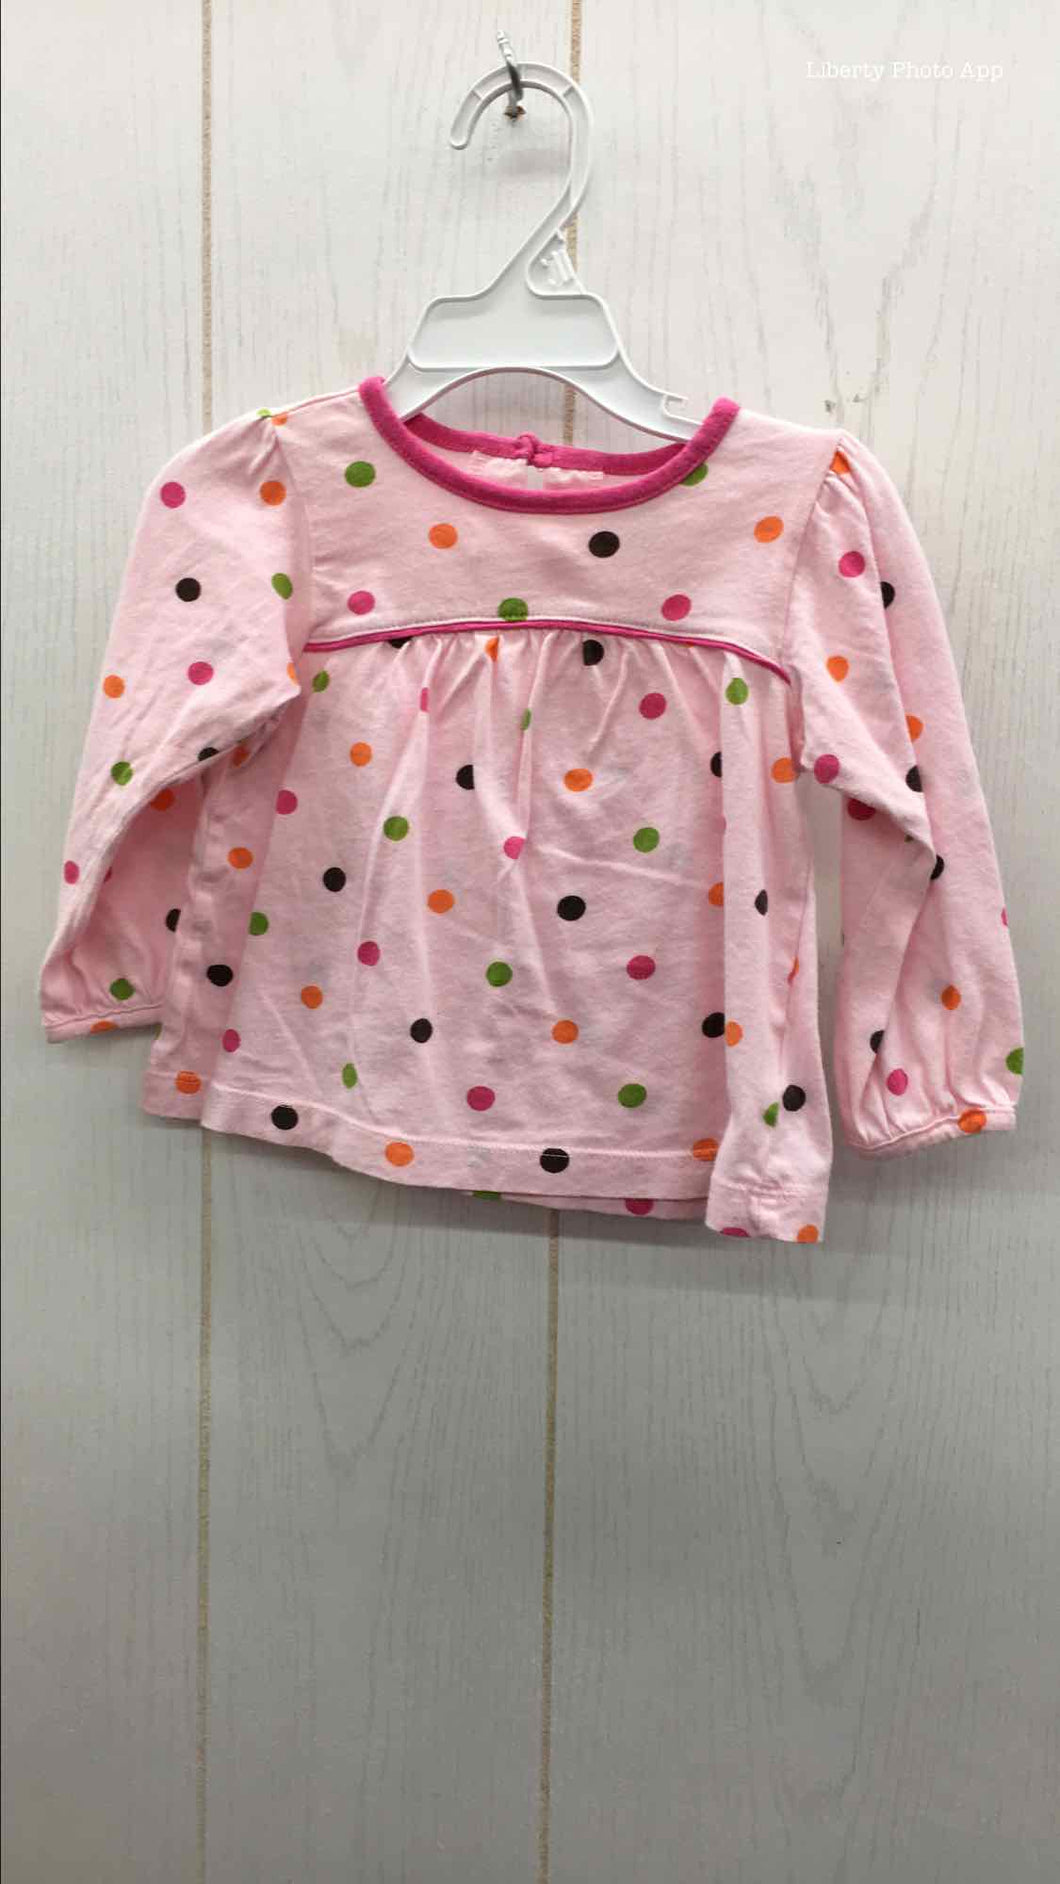 Carters Girls Size 24 Months Shirt